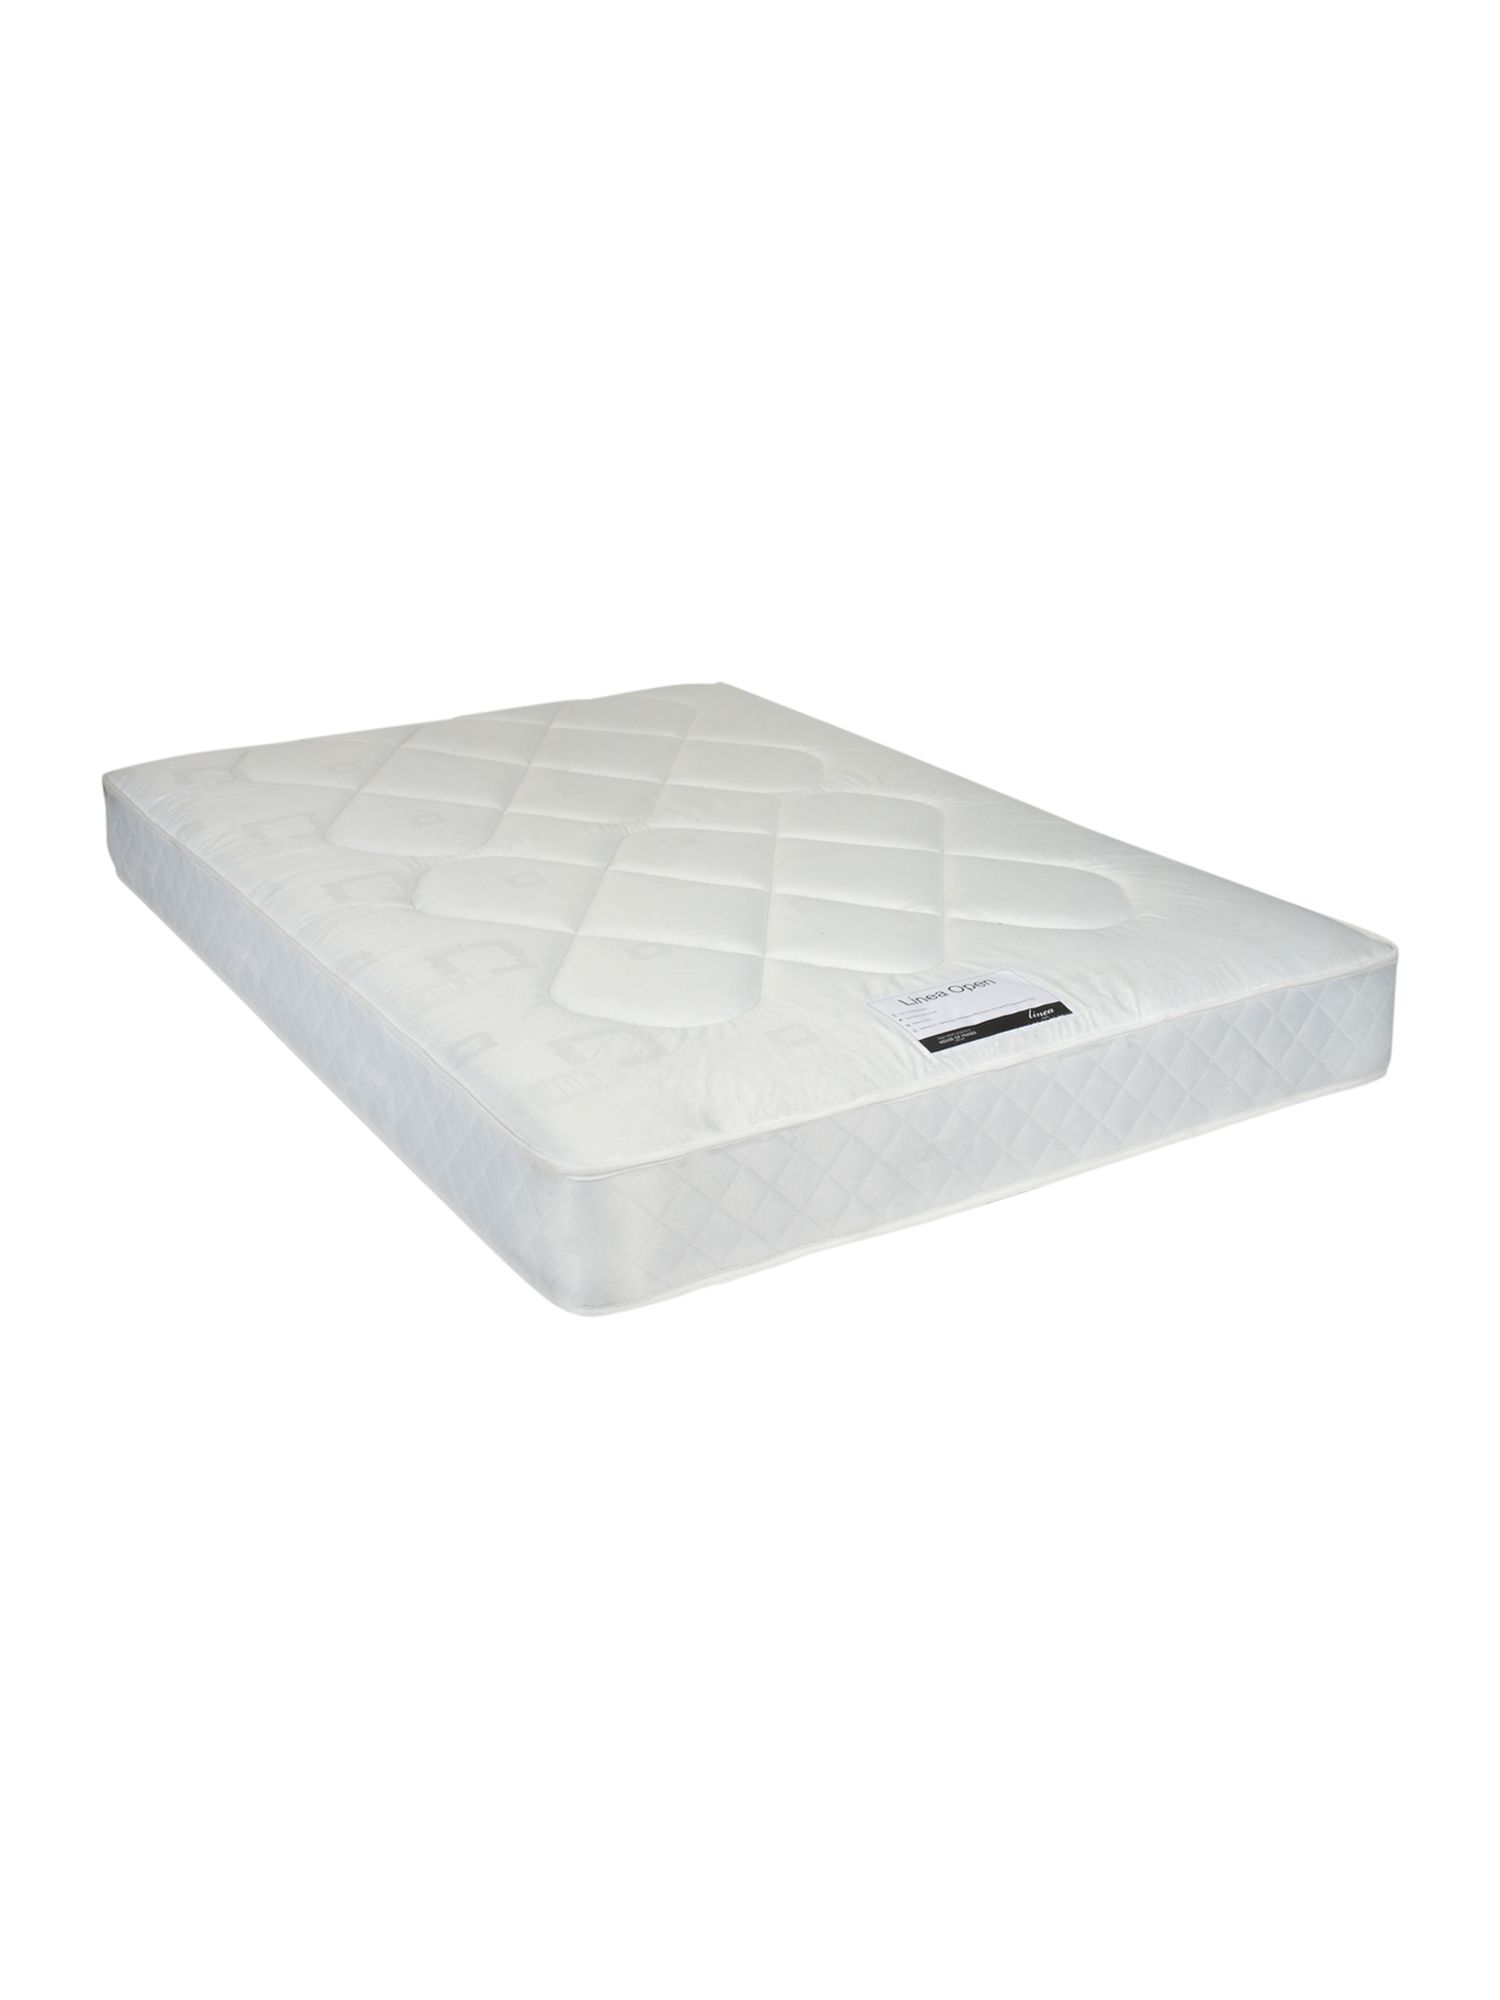 Open mattress range